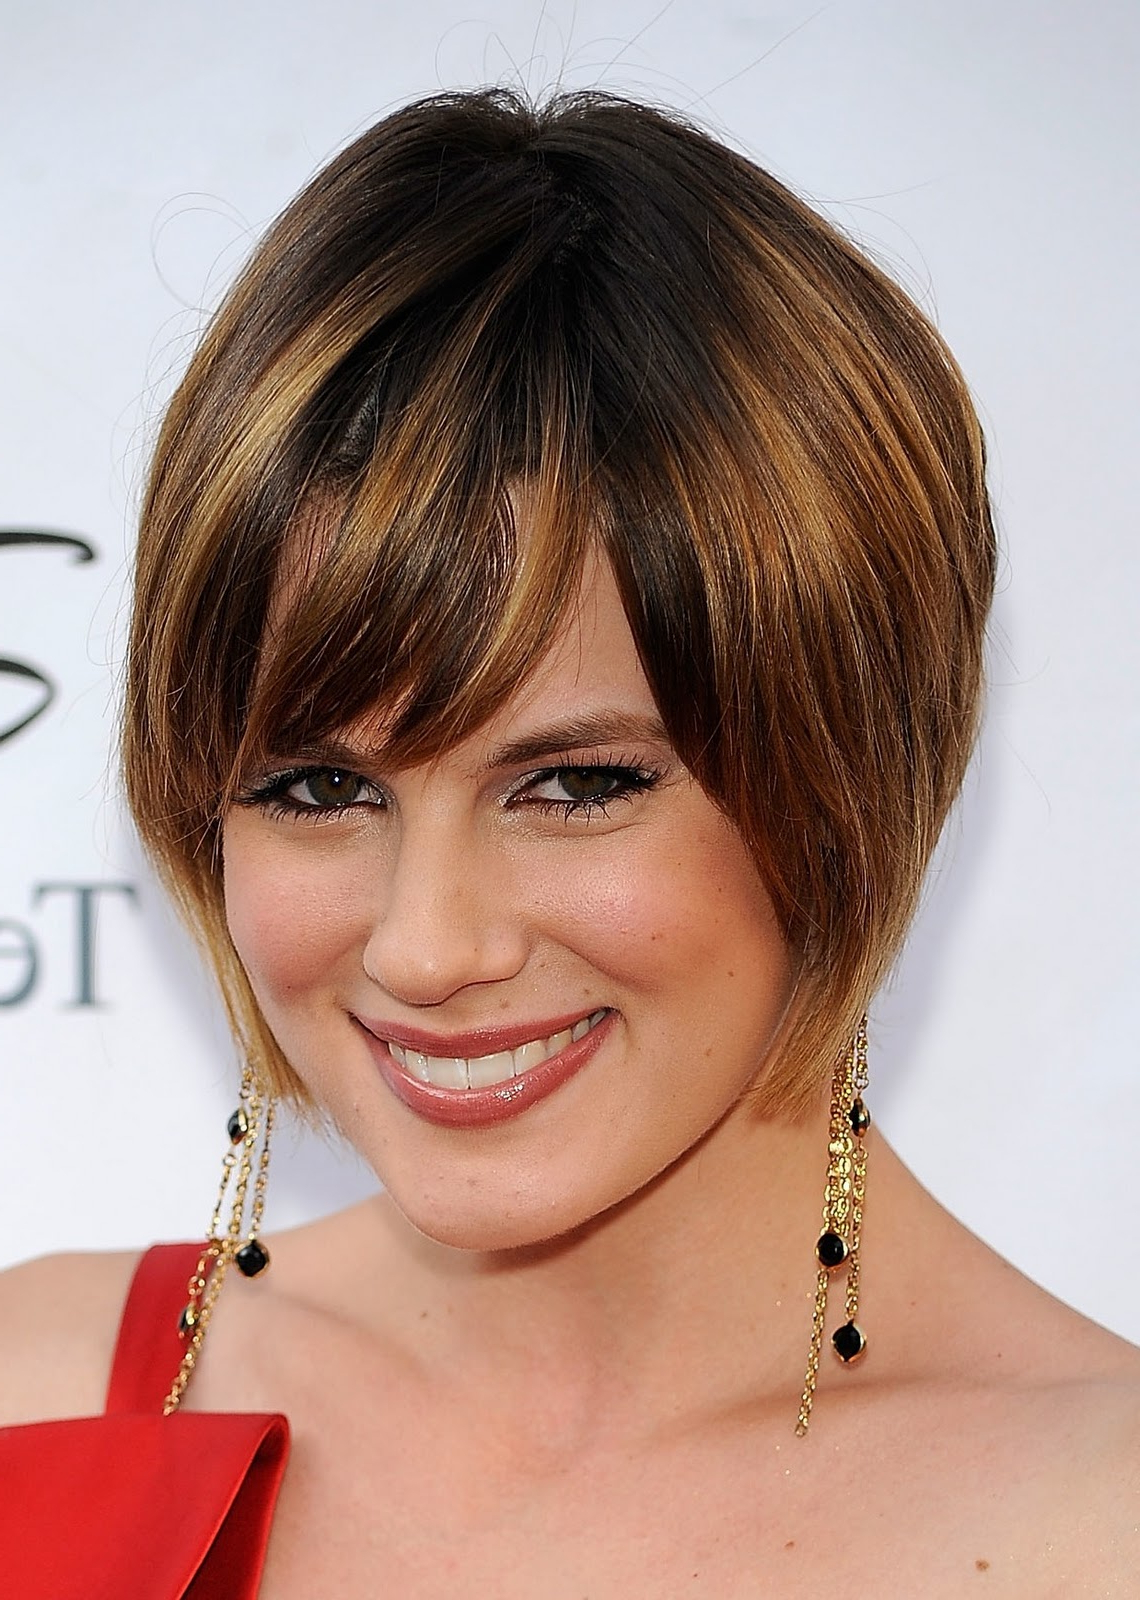 Short Hairstyles With Razor Cuts Pertaining To Razor Cut Short Hairstyles (View 24 of 25)